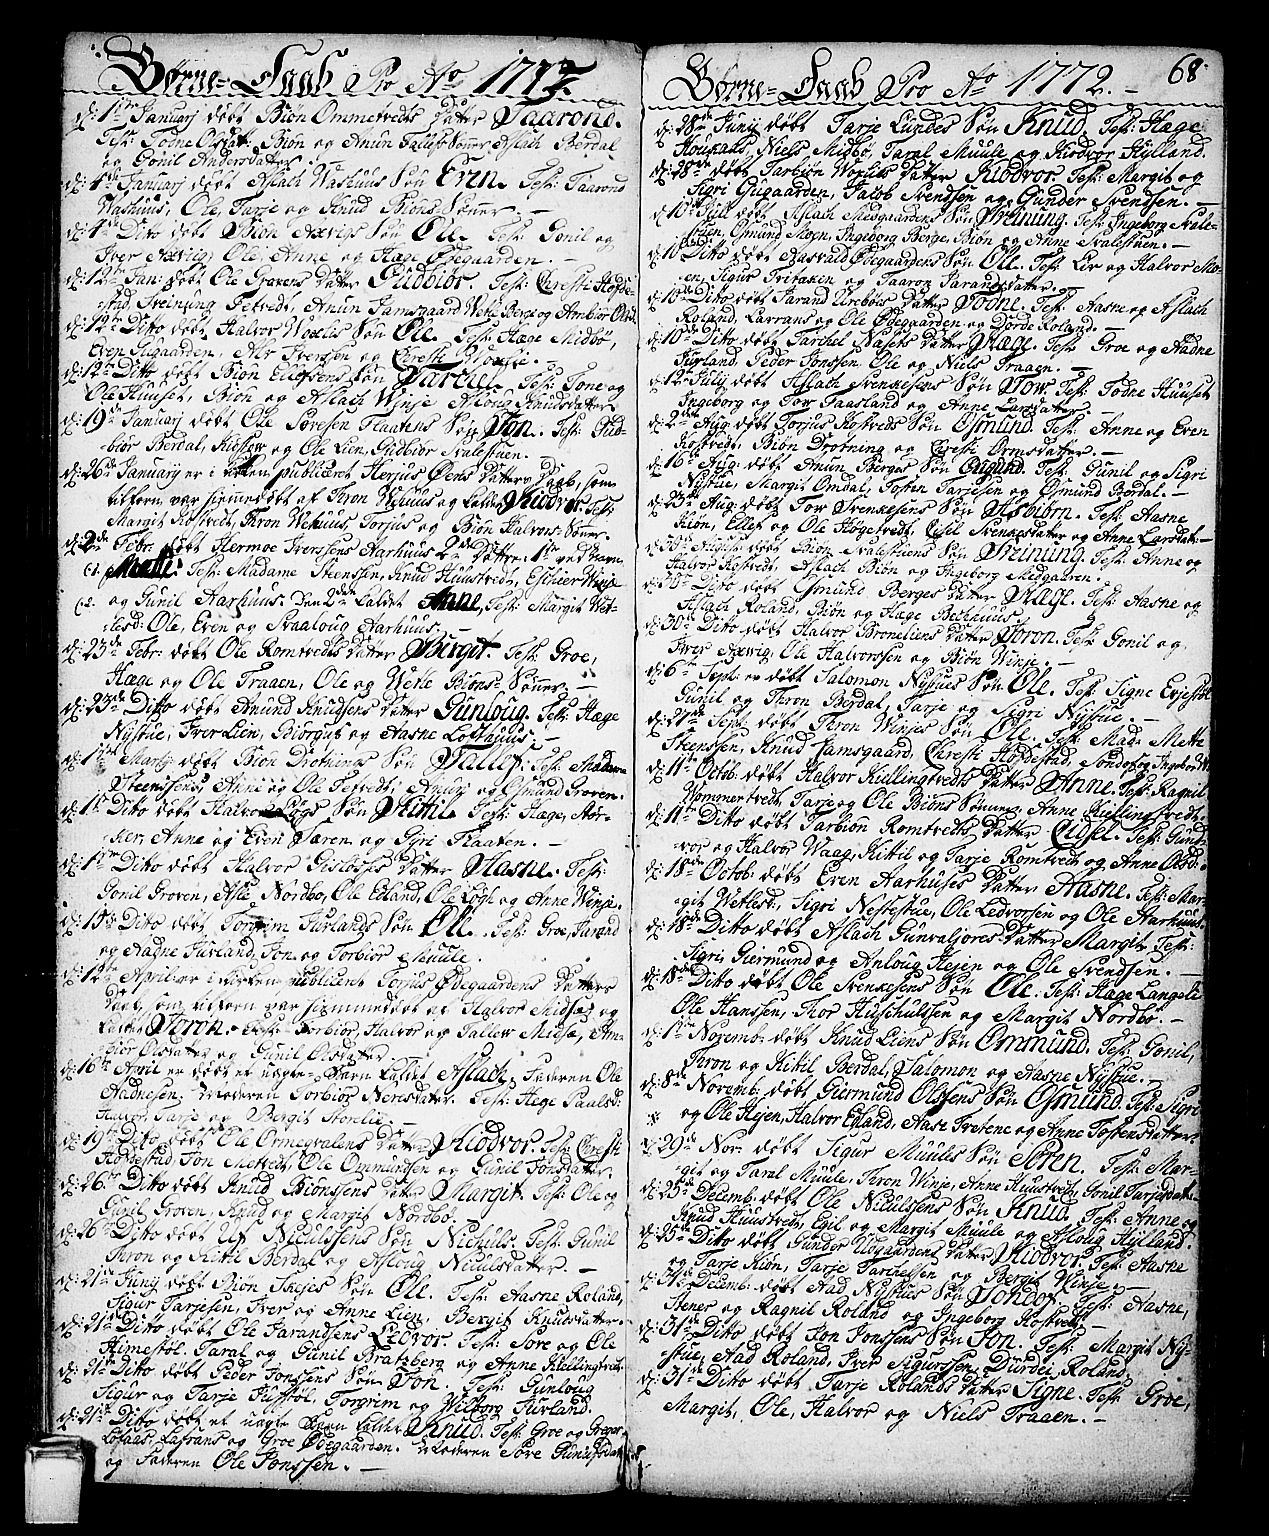 SAKO, Vinje kirkebøker, F/Fa/L0002: Parish register (official) no. I 2, 1767-1814, p. 68